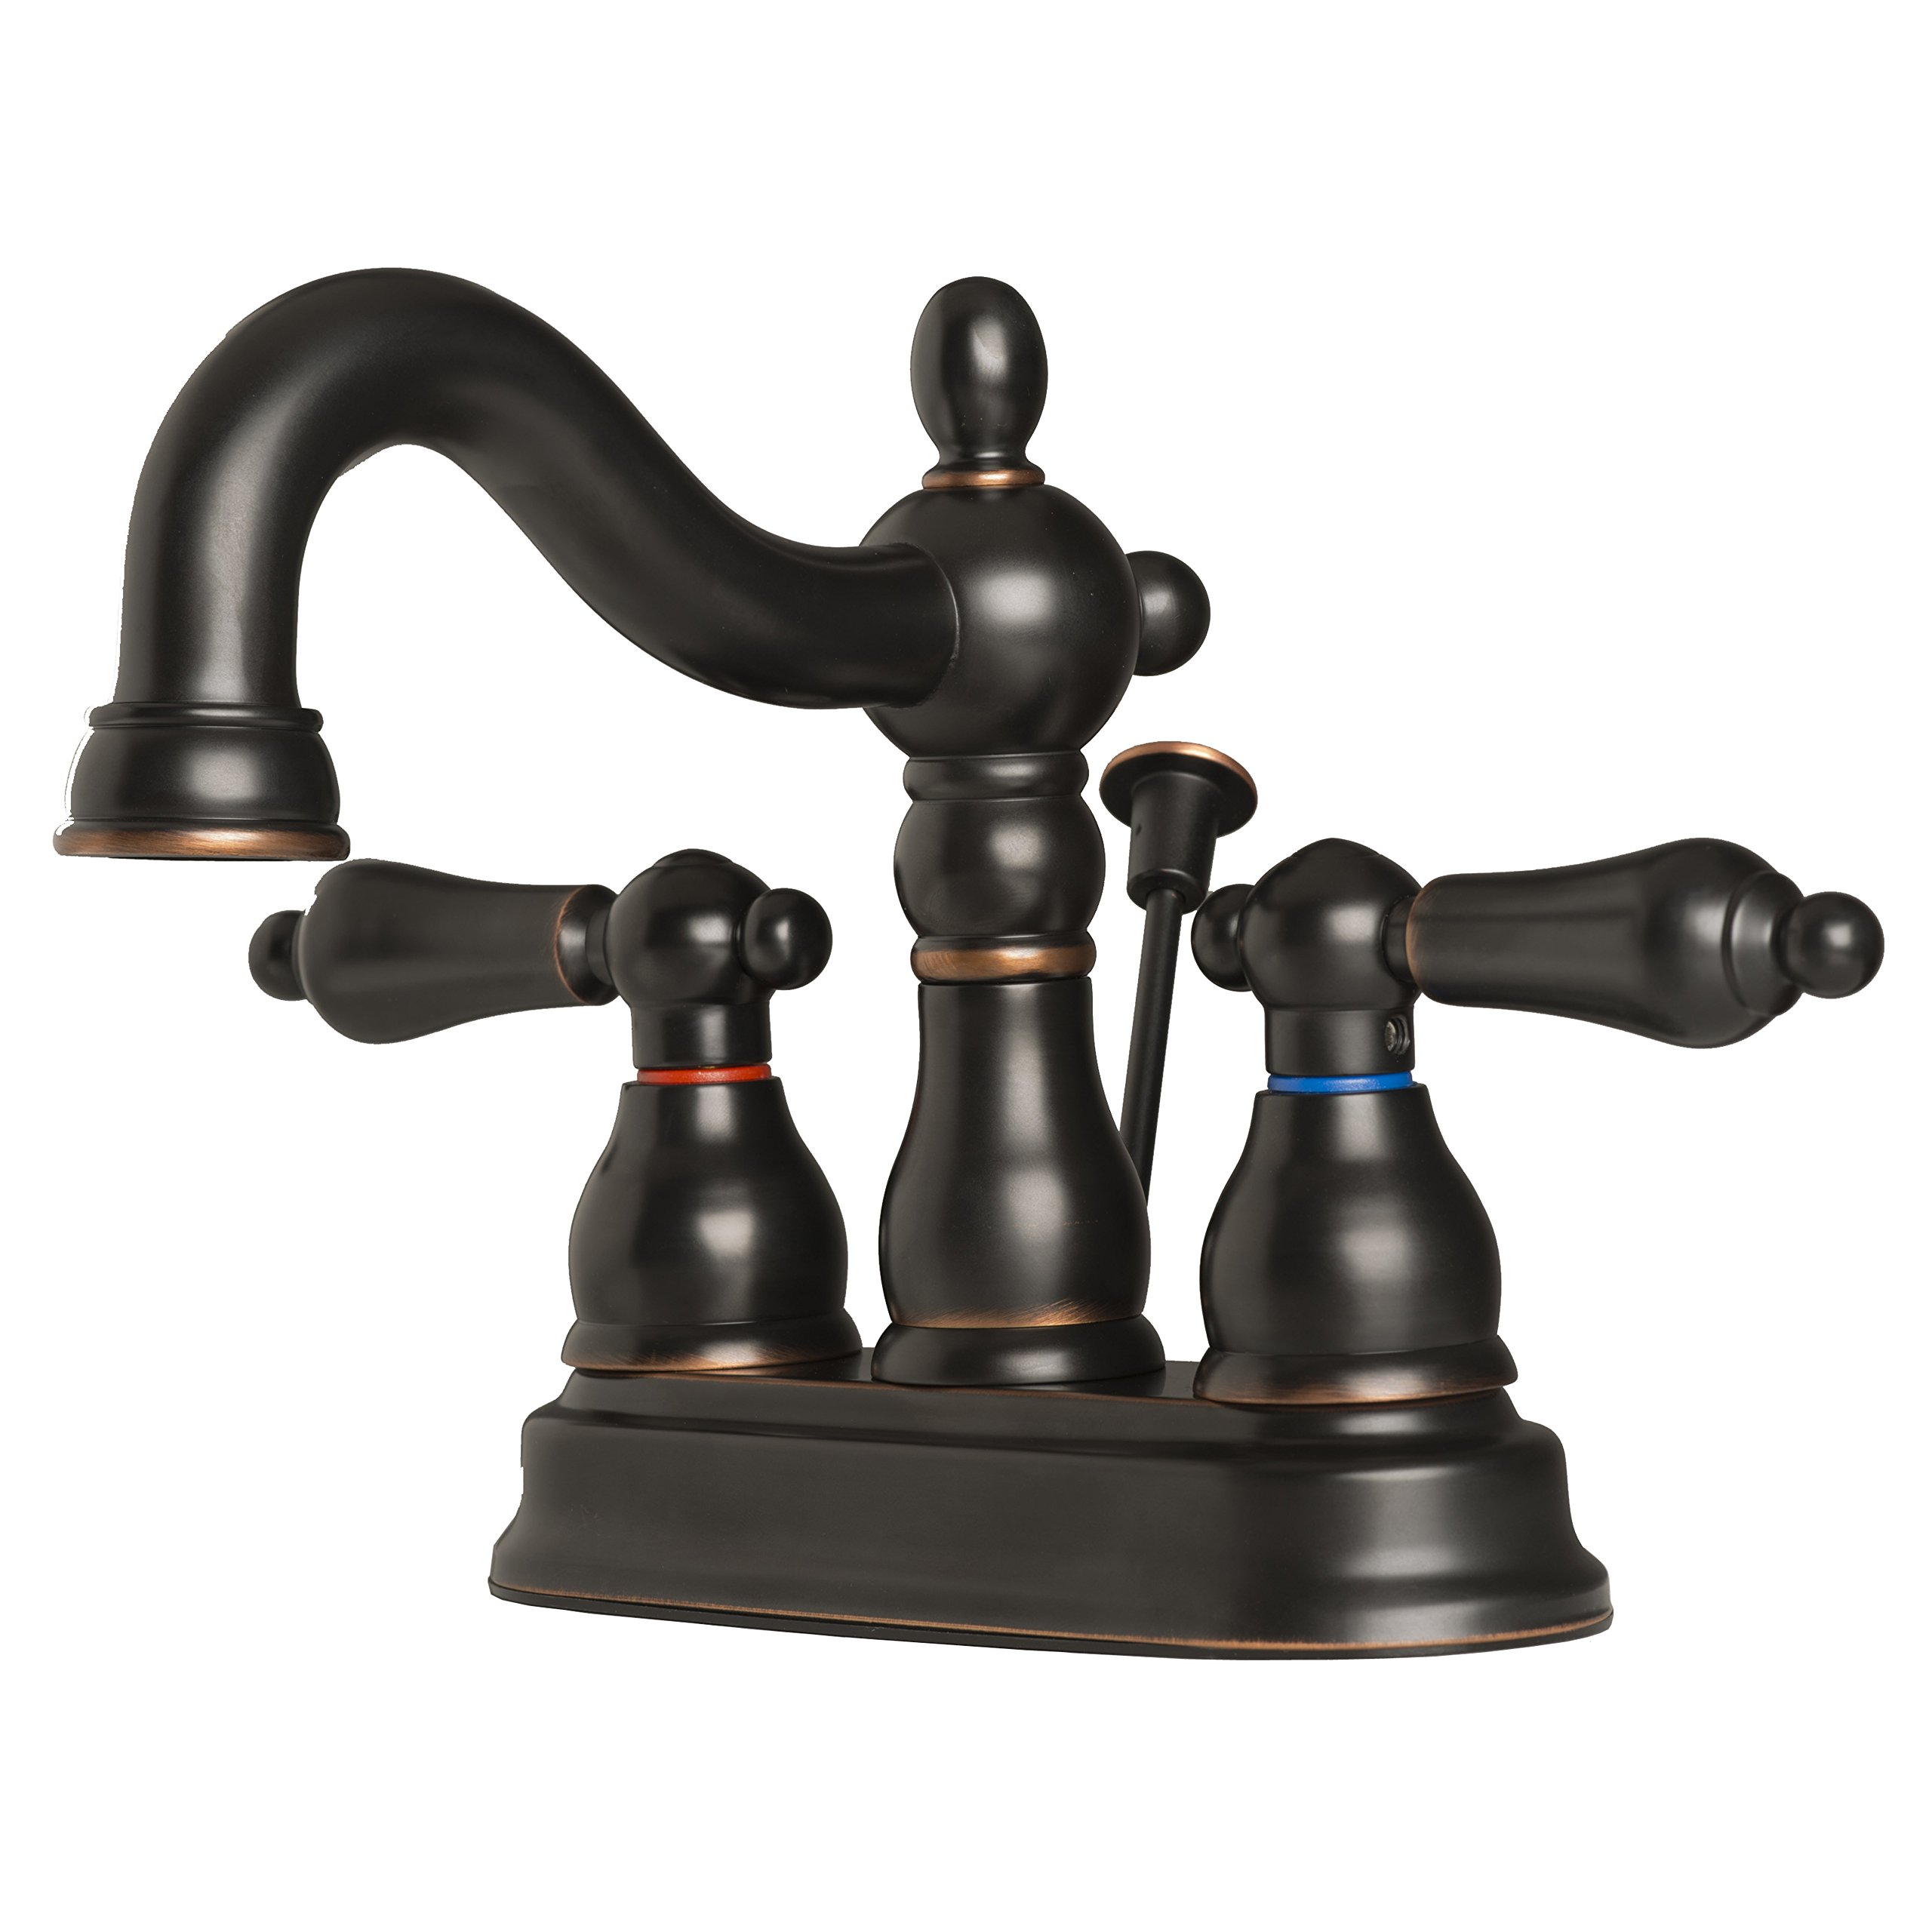 Builders Shoppe 2026TB Two Handle Centerset Lavatory Faucet with Pop-Up Drain Oil Rubbed Bronze Finish